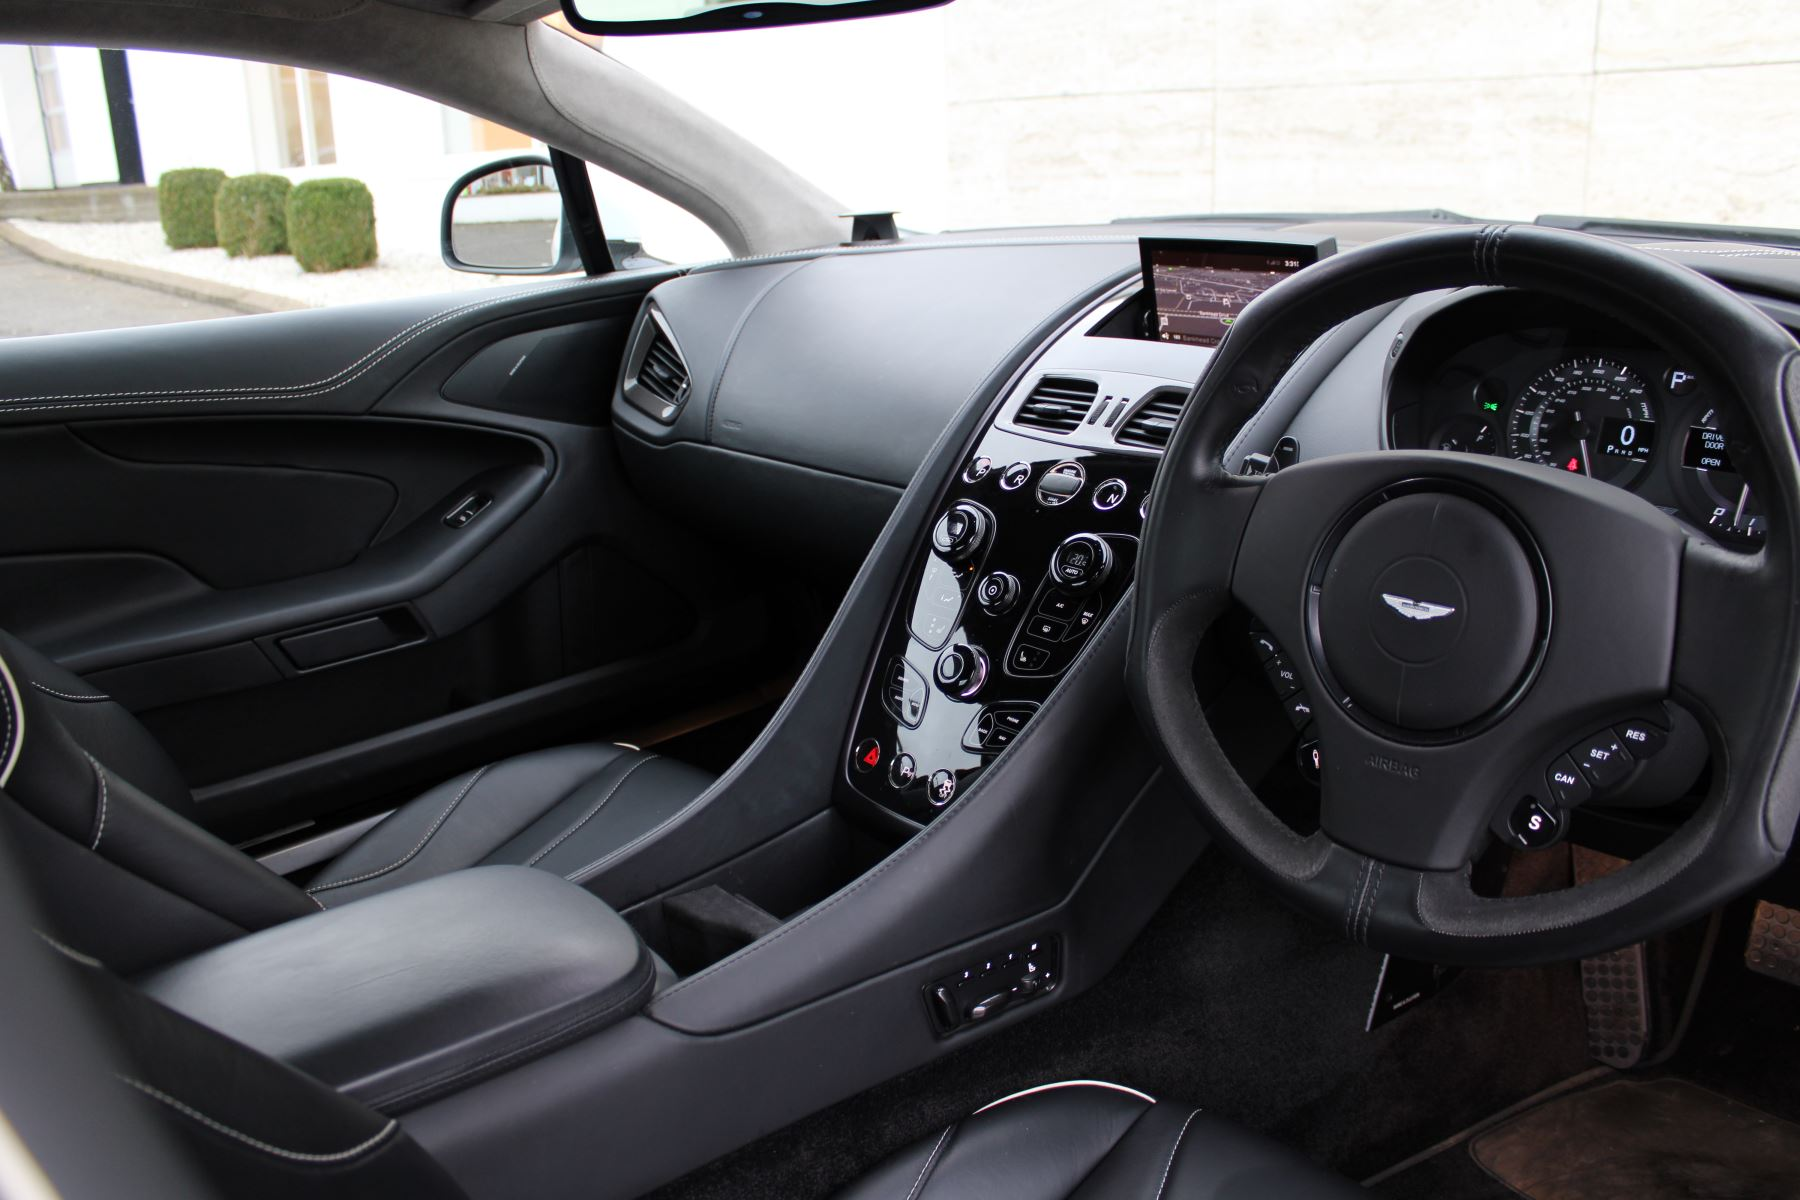 Aston Martin Vanquish V12 [568] 2+2 2dr Touchtronic image 17